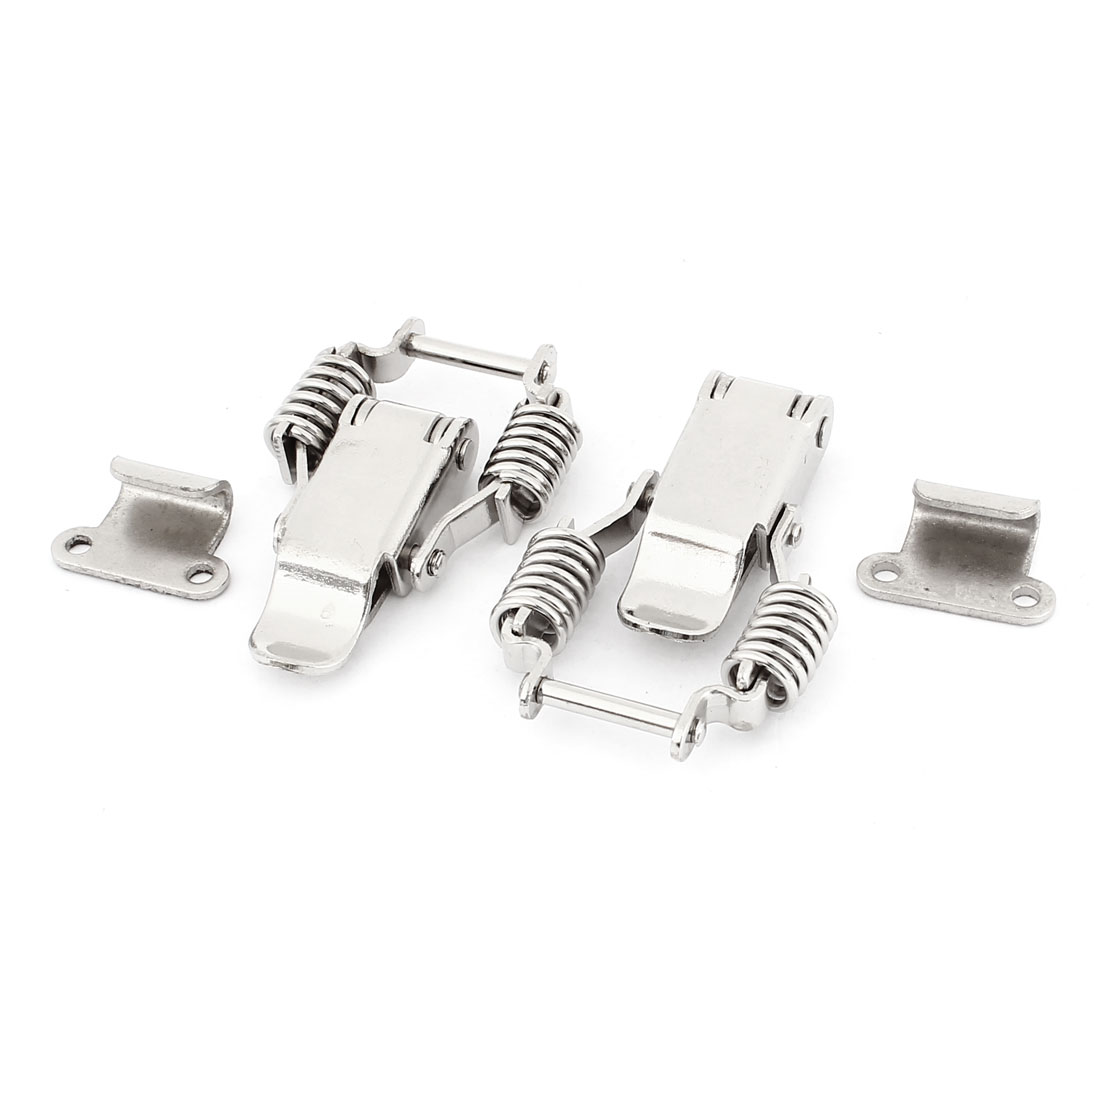 2 Sets Silver Tone Stainless Steel Toggle Latch Catch 5.5cm Length